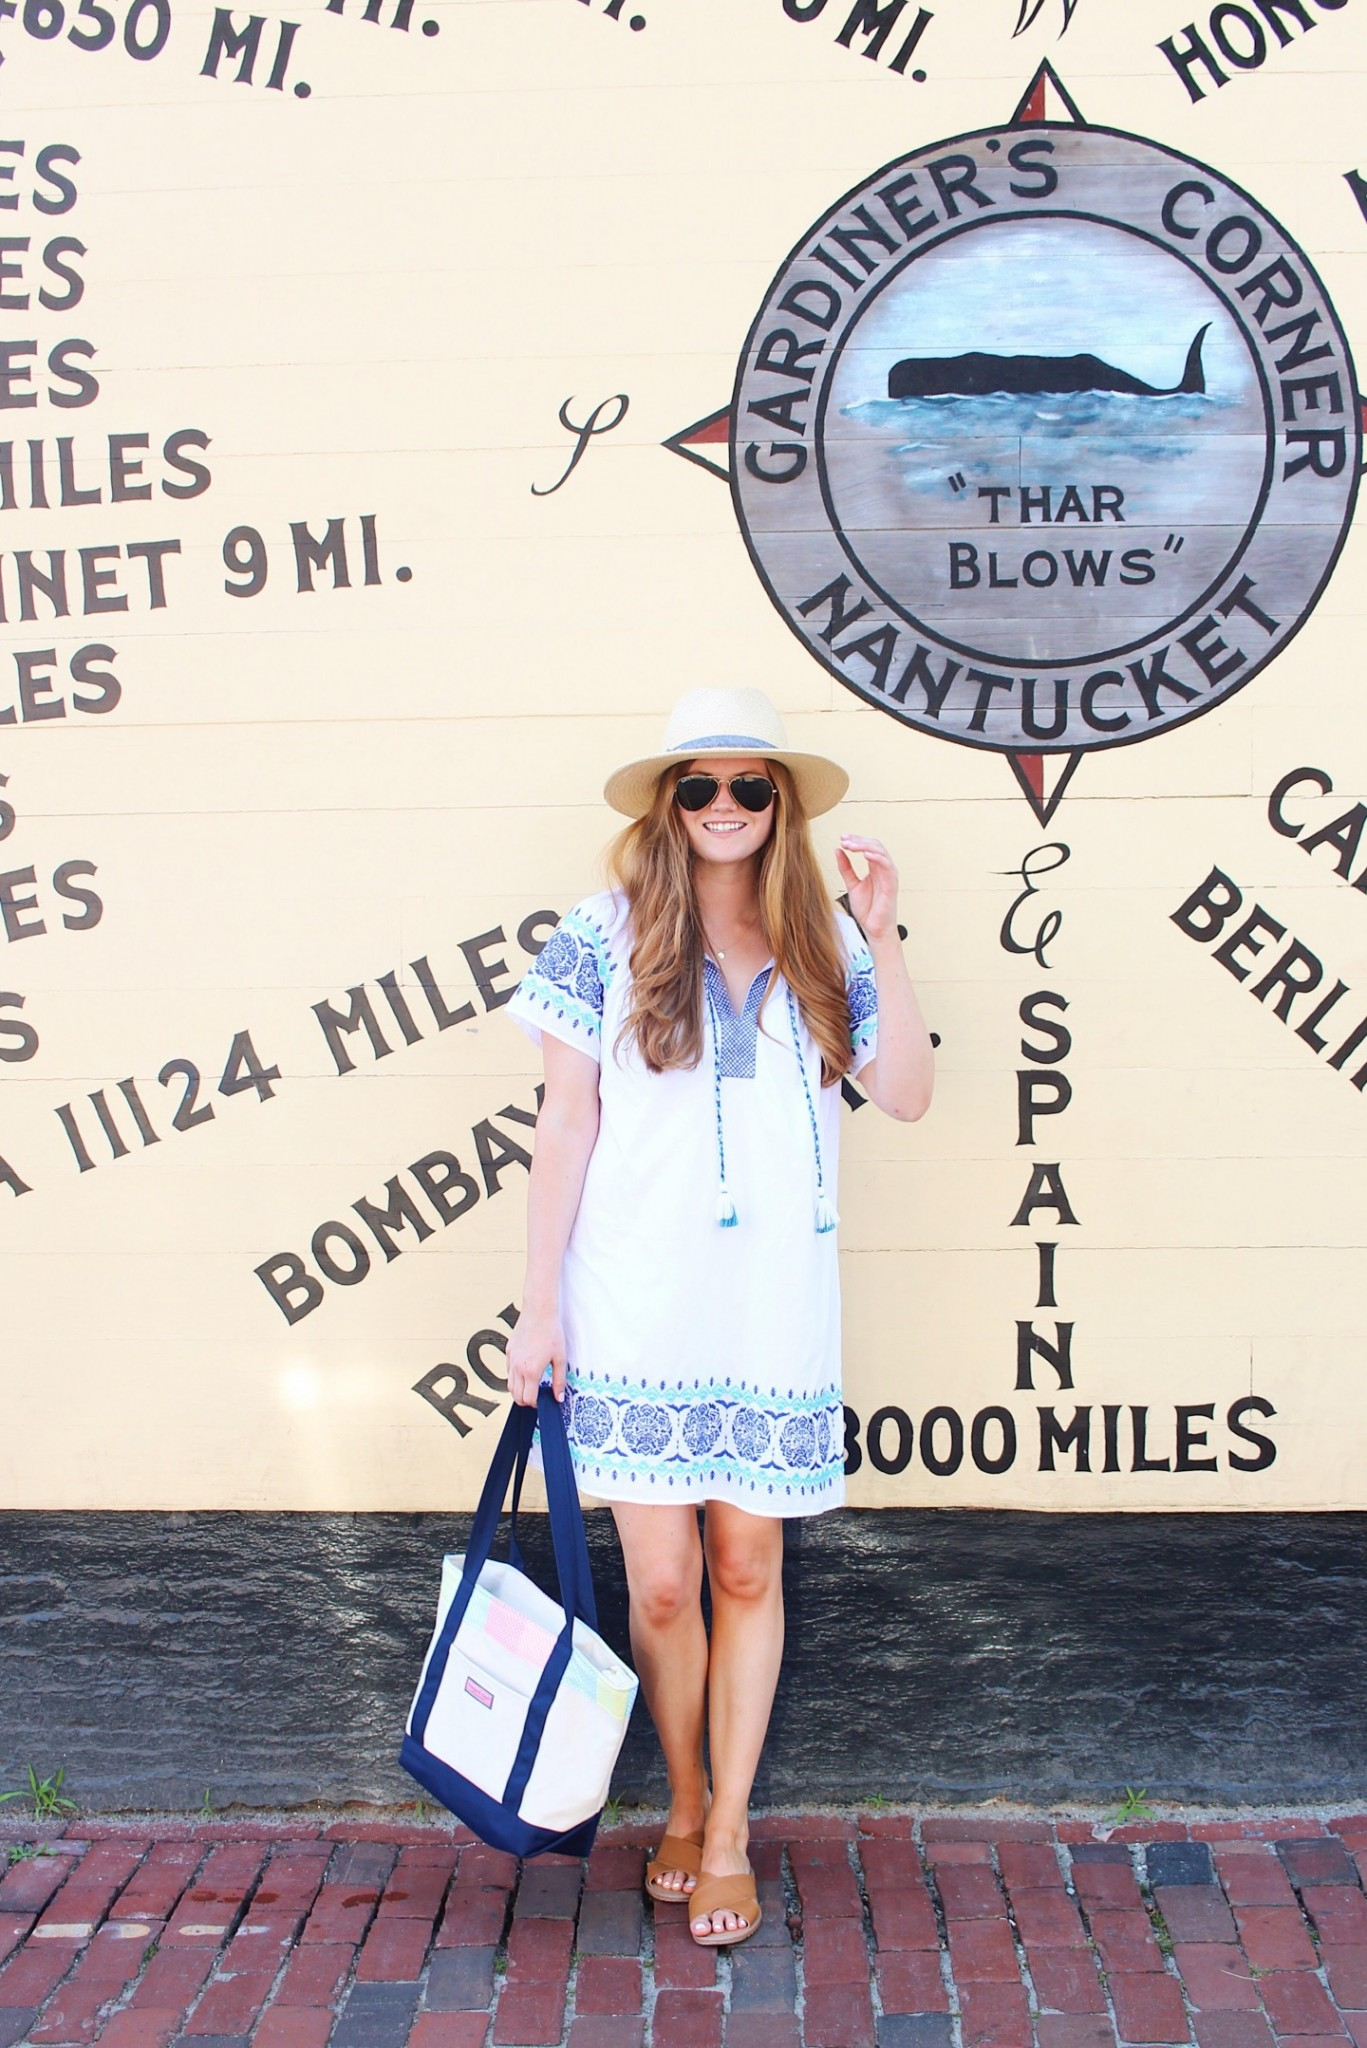 Lifestyle blogger Mollie Moore shares 12 things to while visiting Nantucket